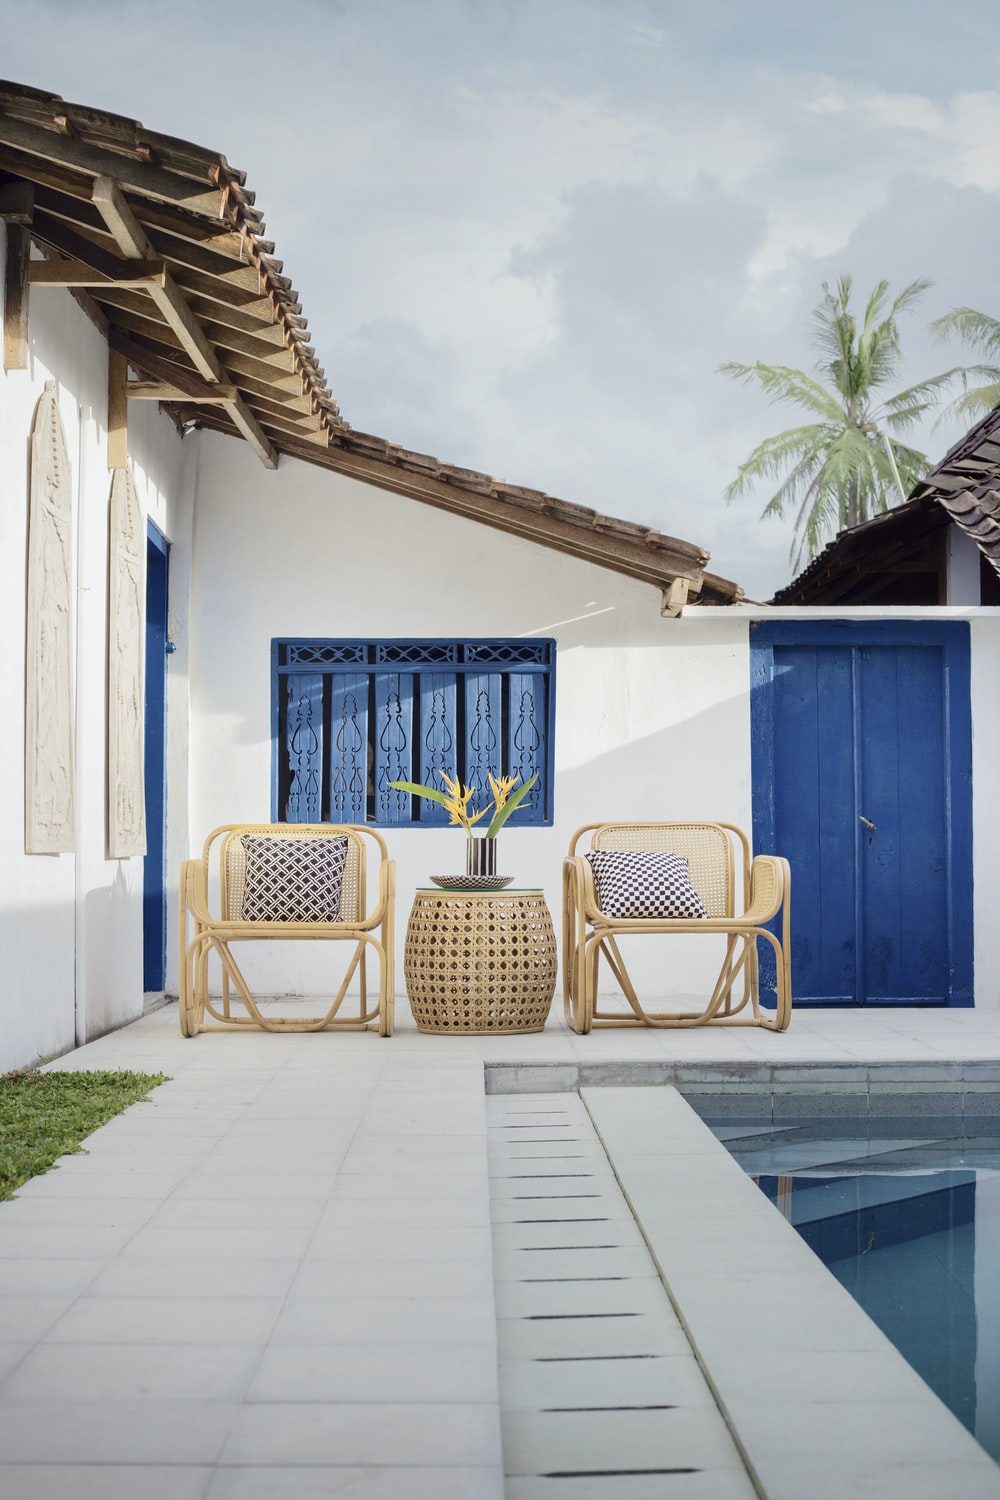 wicker table and two chairs near swimming pool